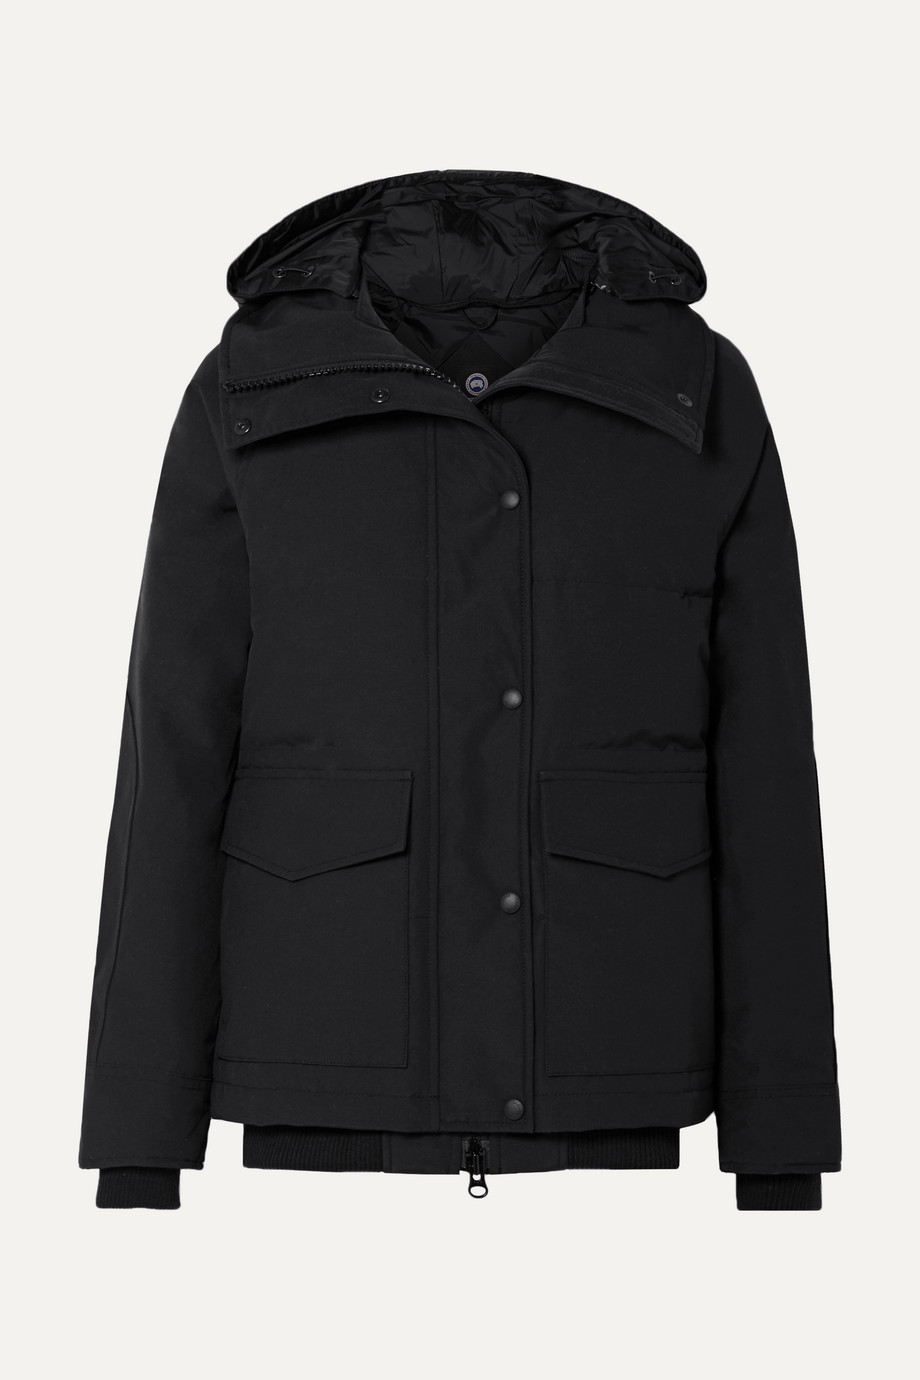 Canada Goose Deep Cove shell down jacket